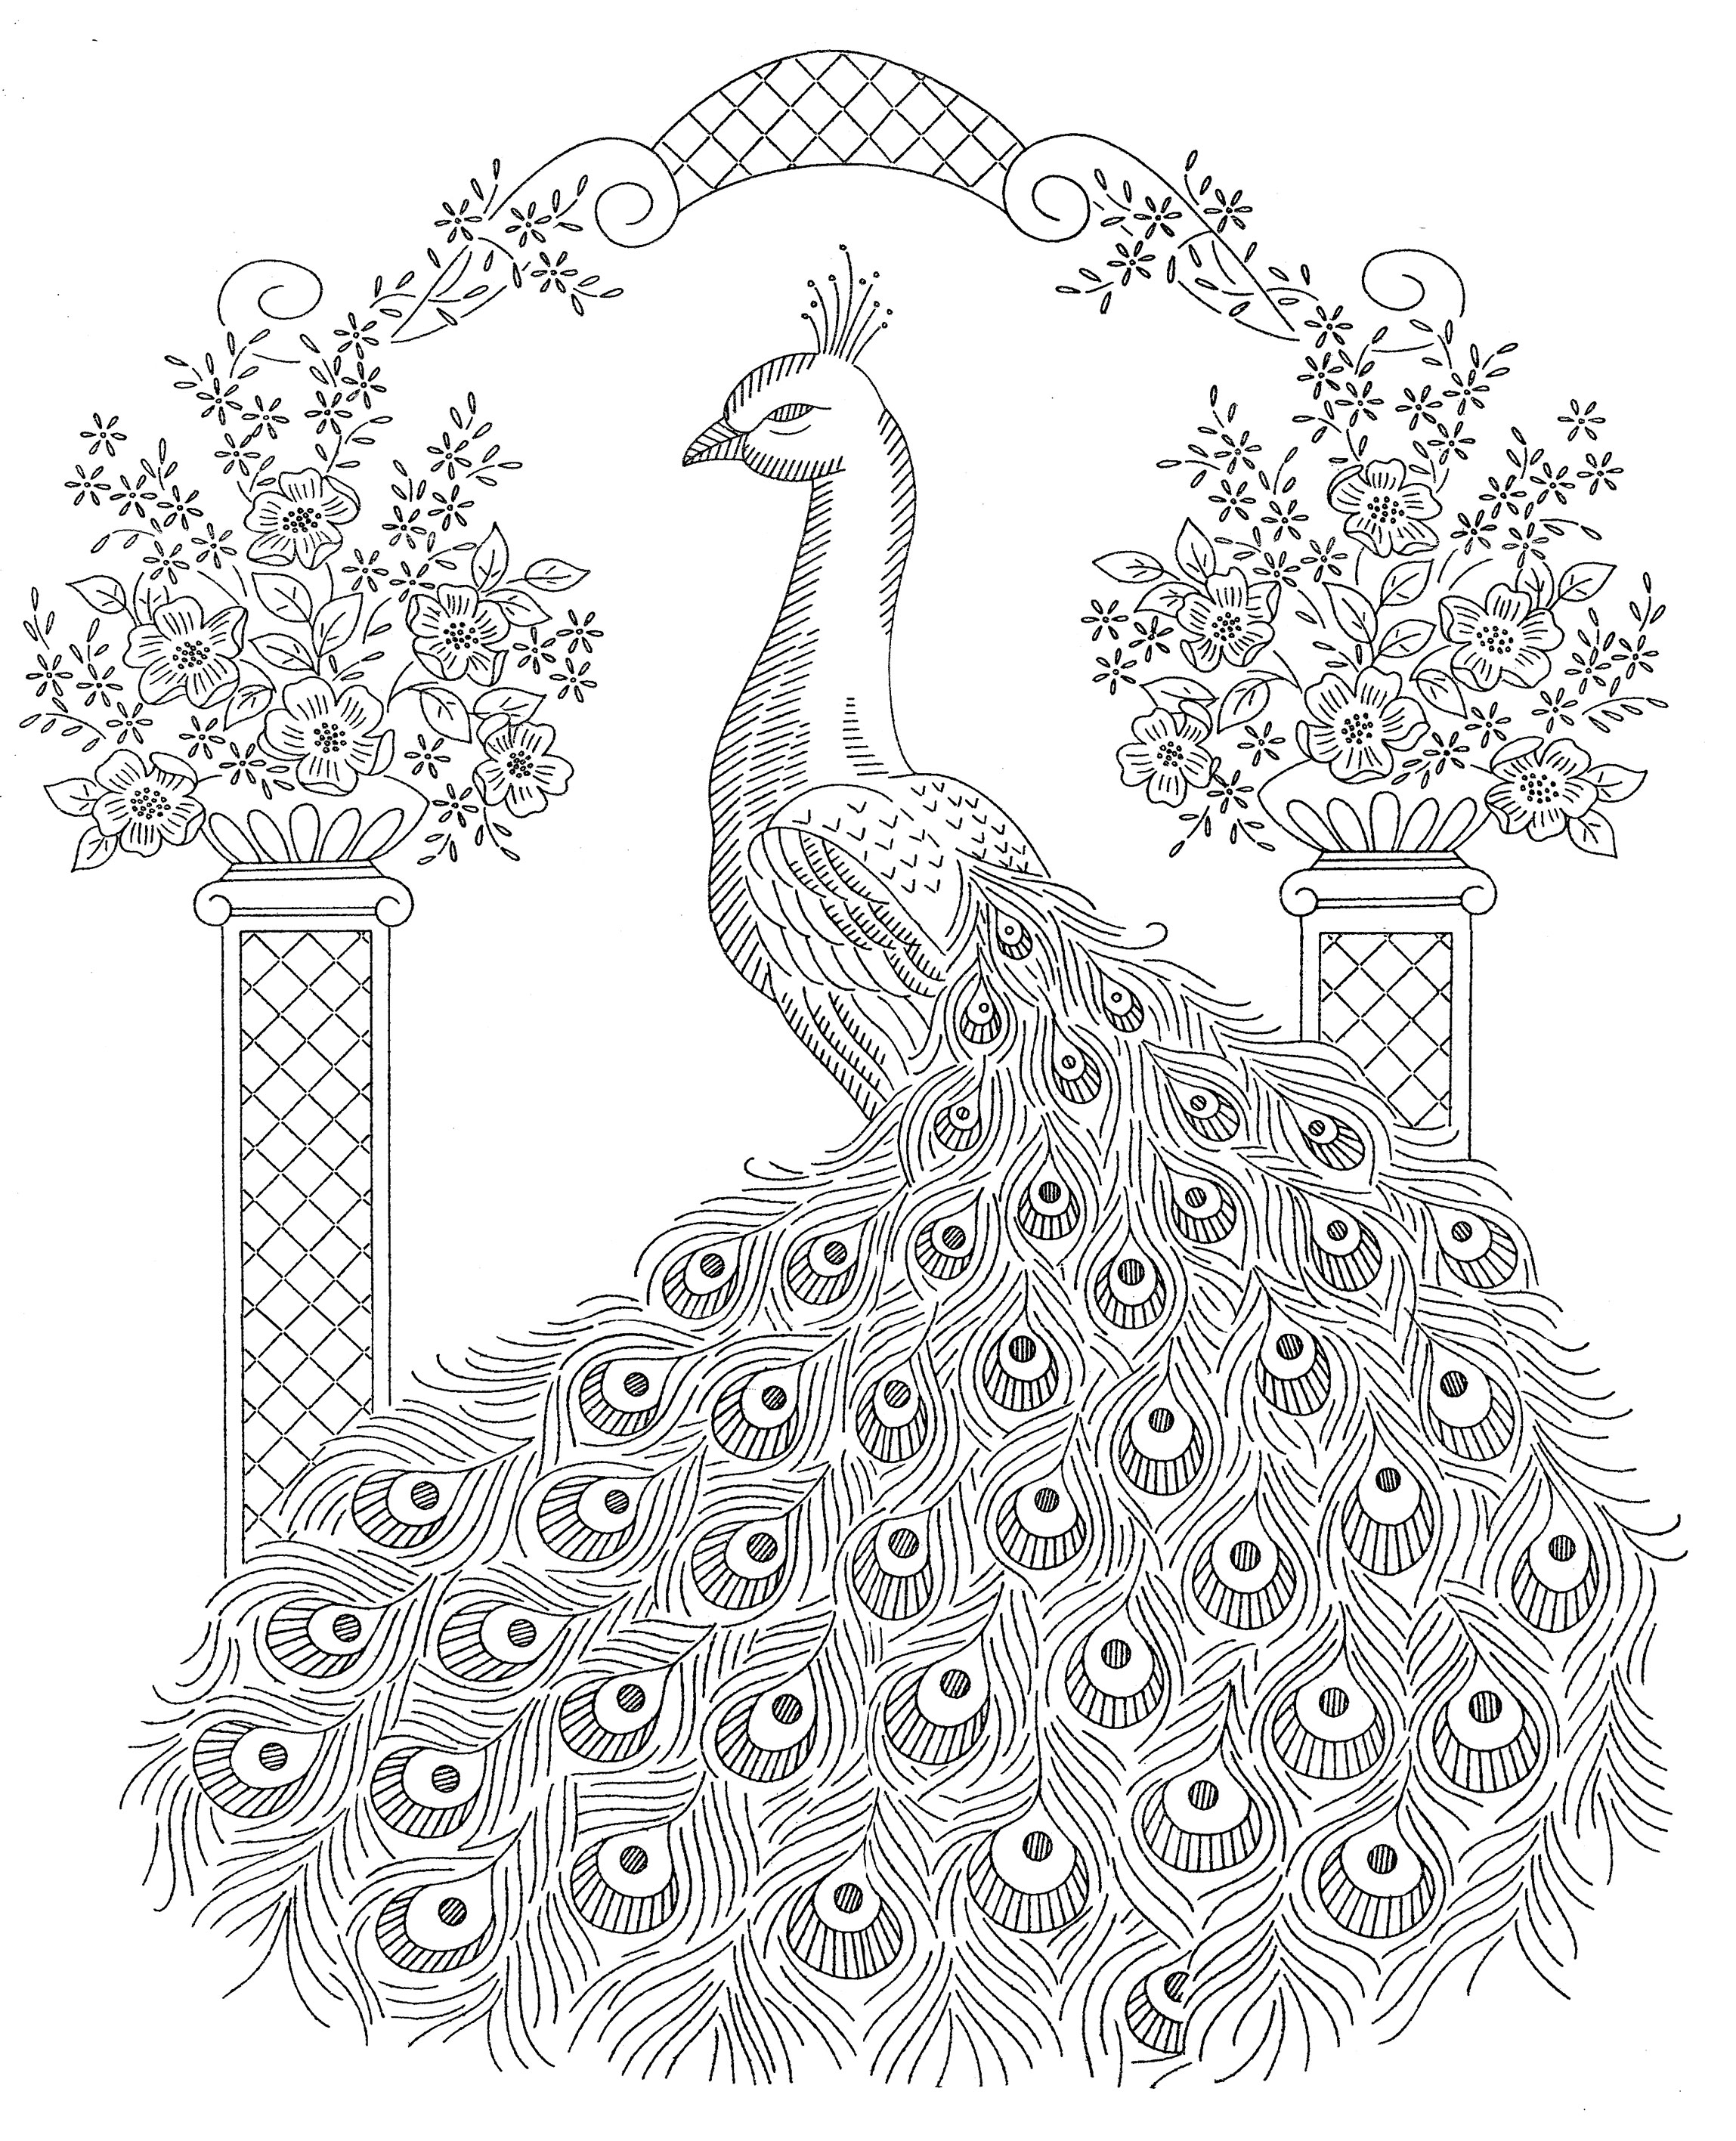 coloring outline image of peacock peacock drawing outline for glass painting at getdrawings outline image peacock of coloring